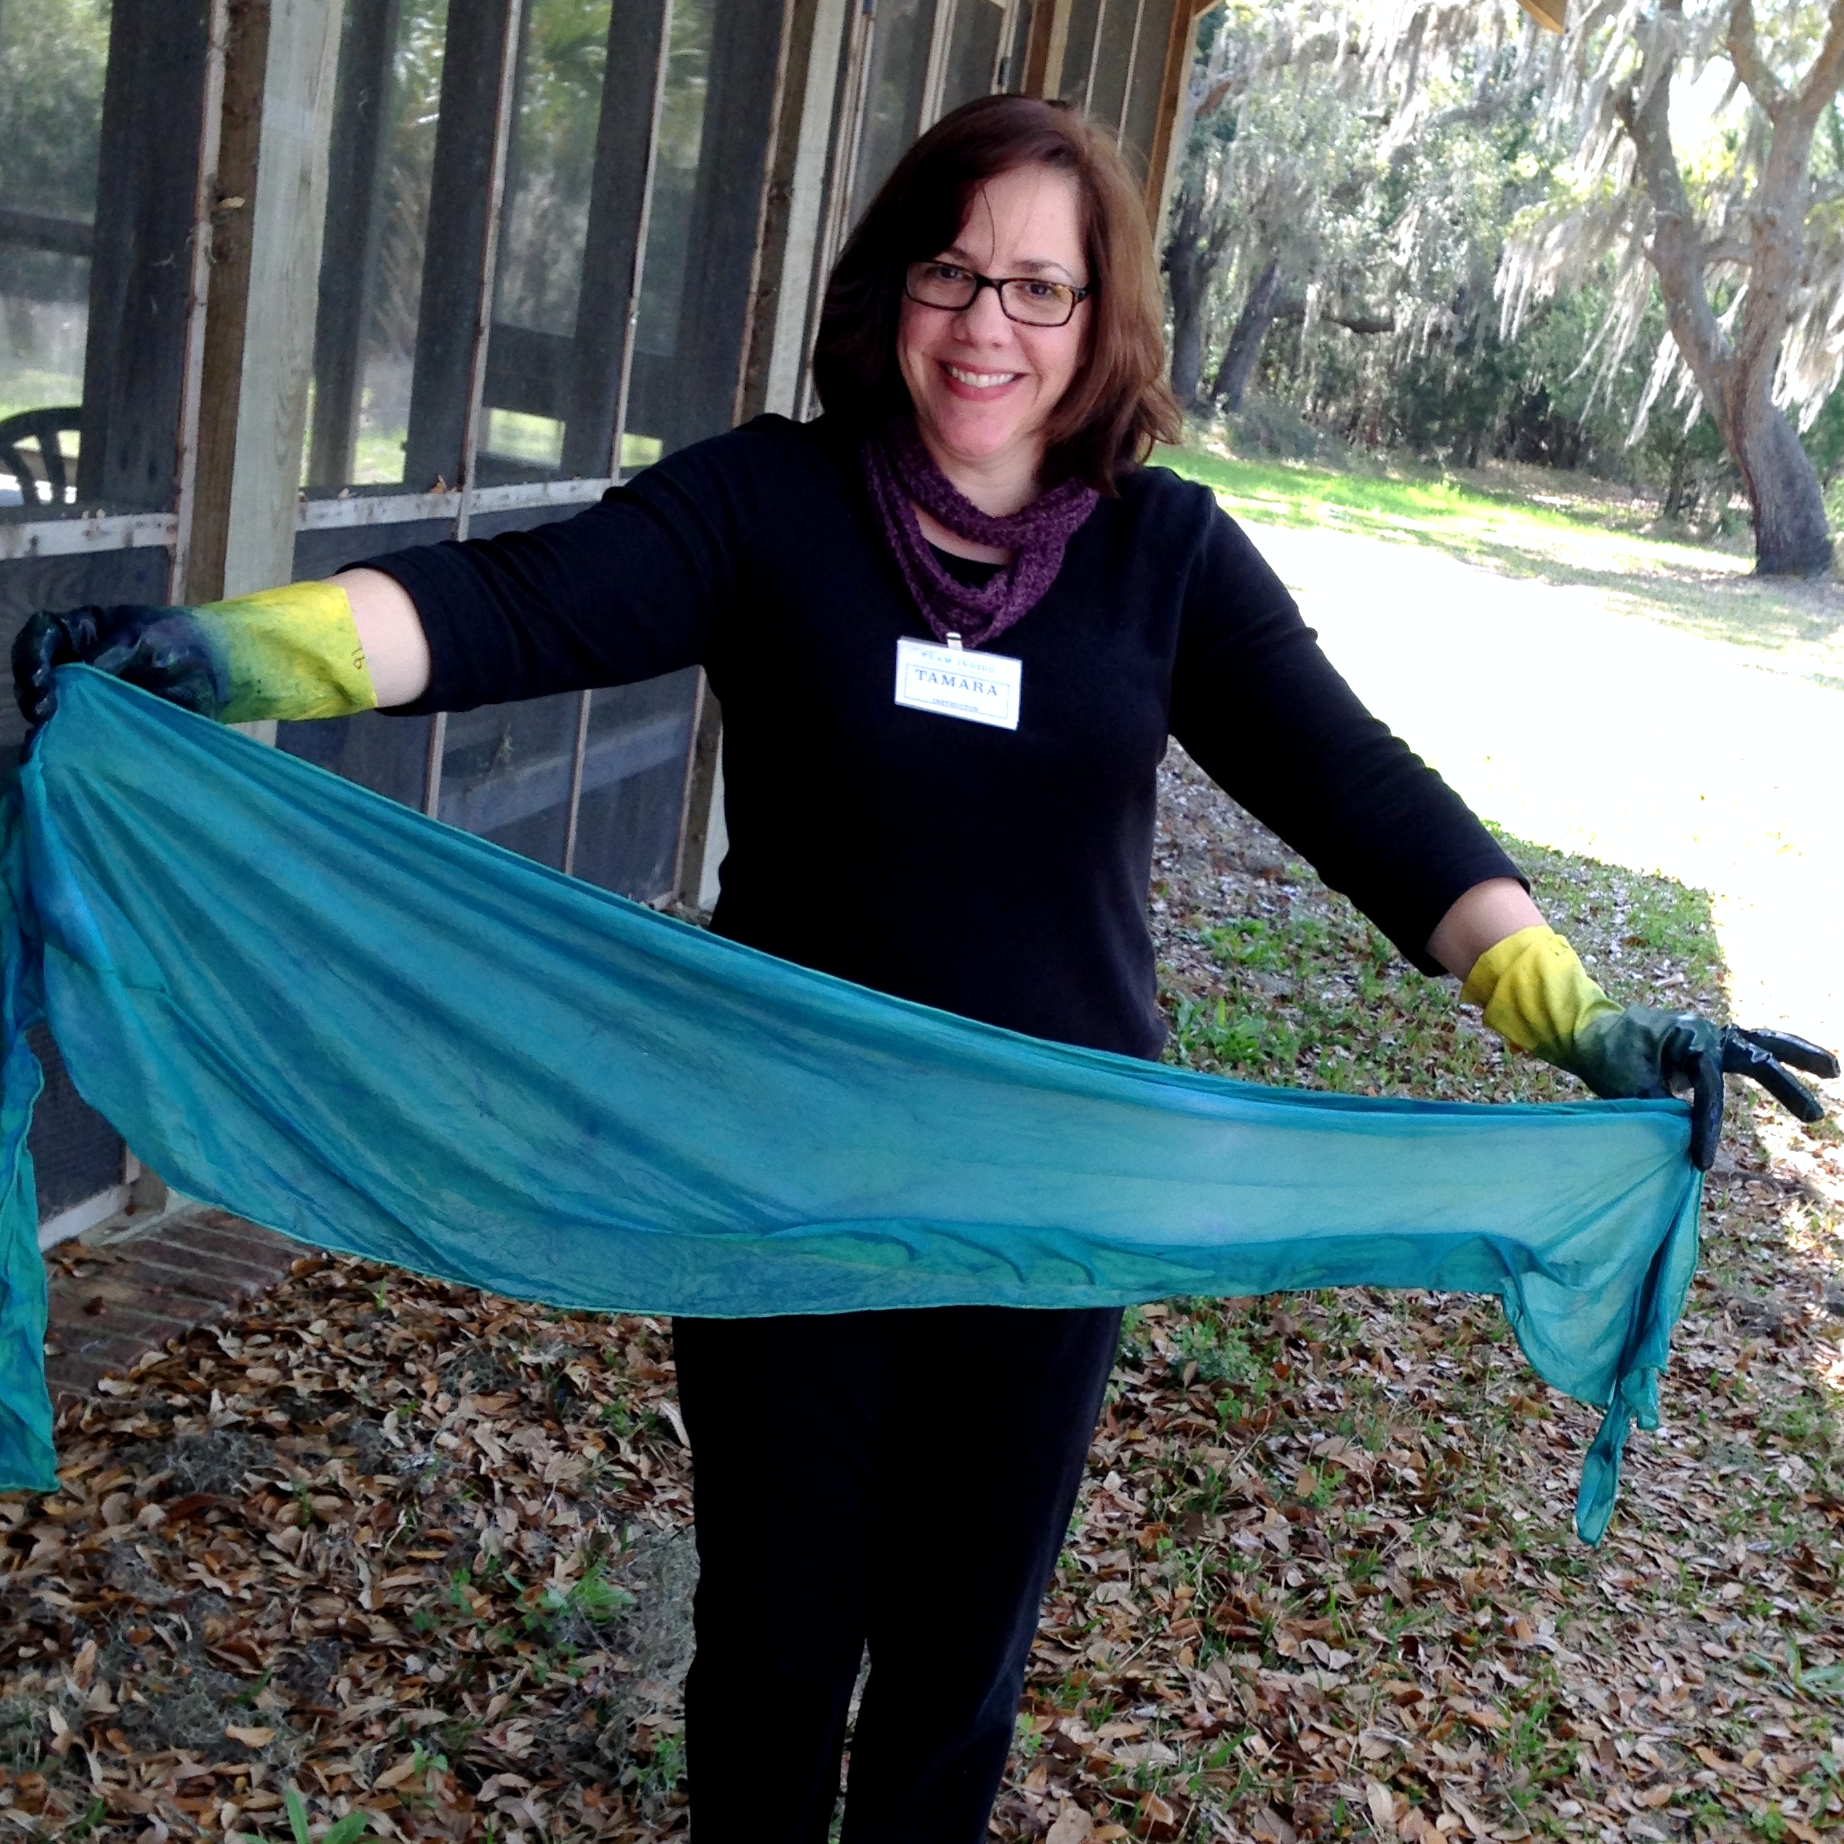 At one of my indigo dyeing workshops at the Charleston Museum's Dill Sanctuary. I love my job!